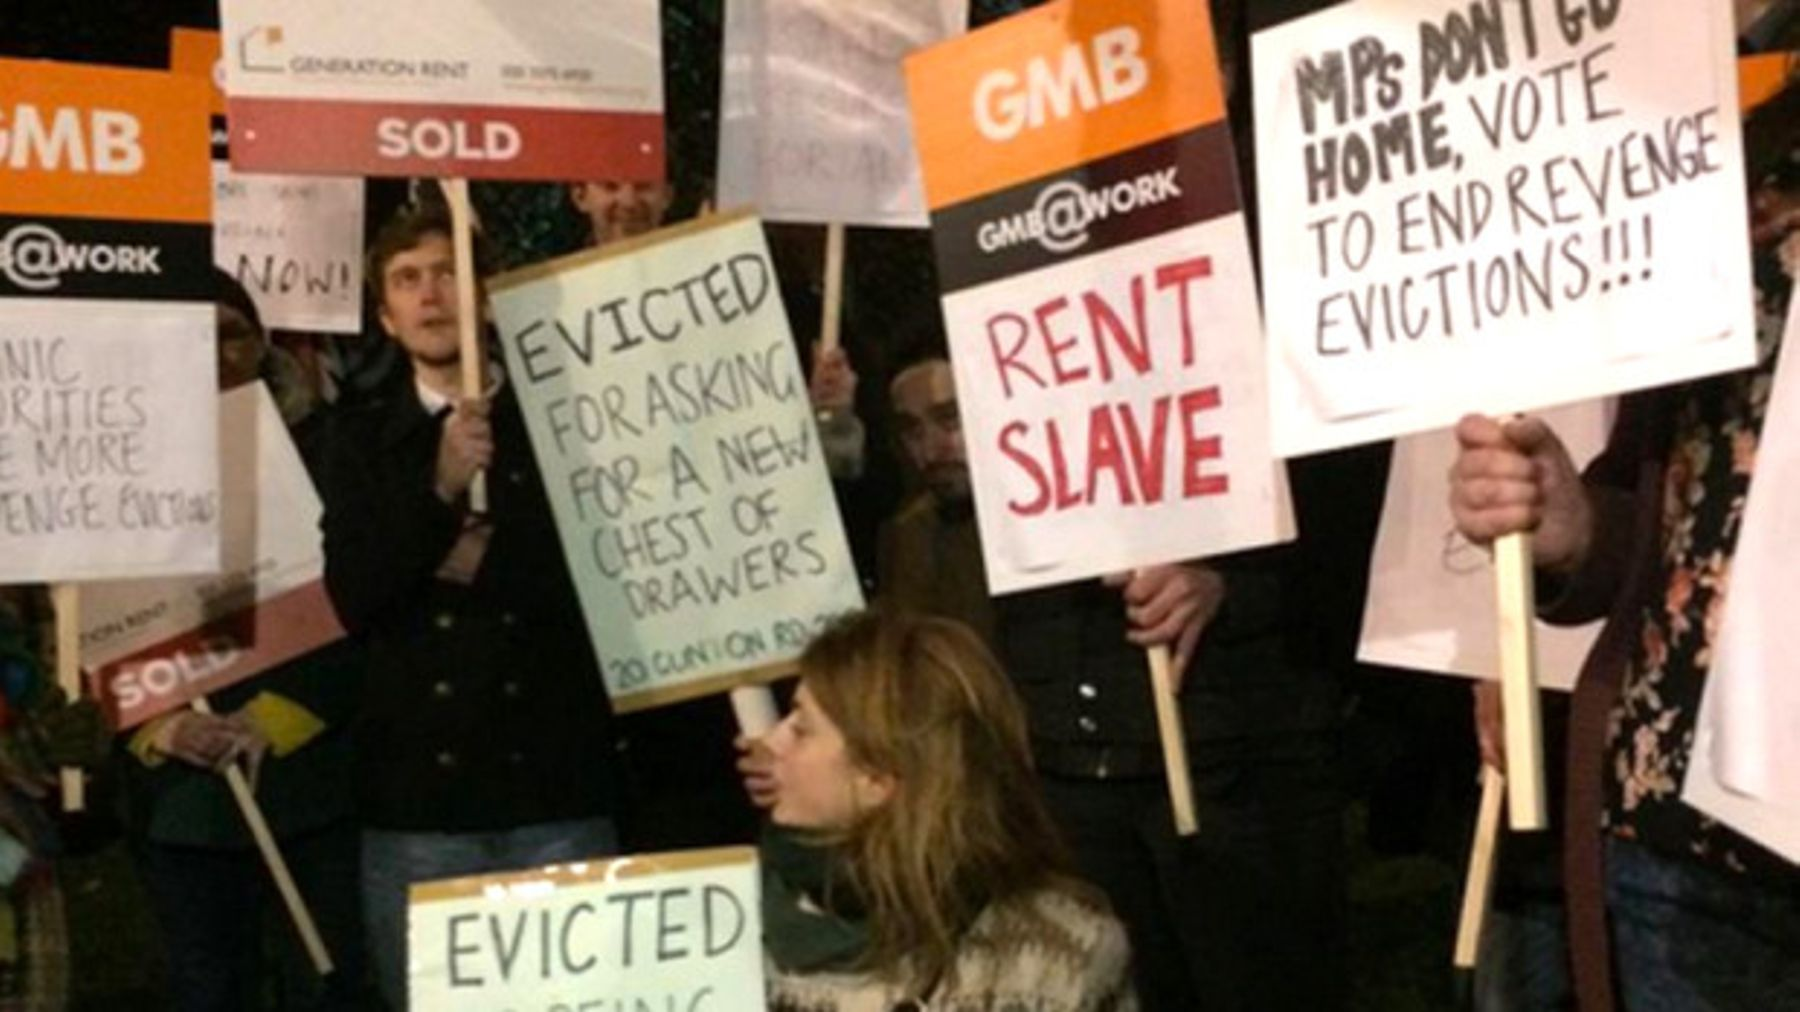 Last Night There Was A Protest Against Revenge Evictions